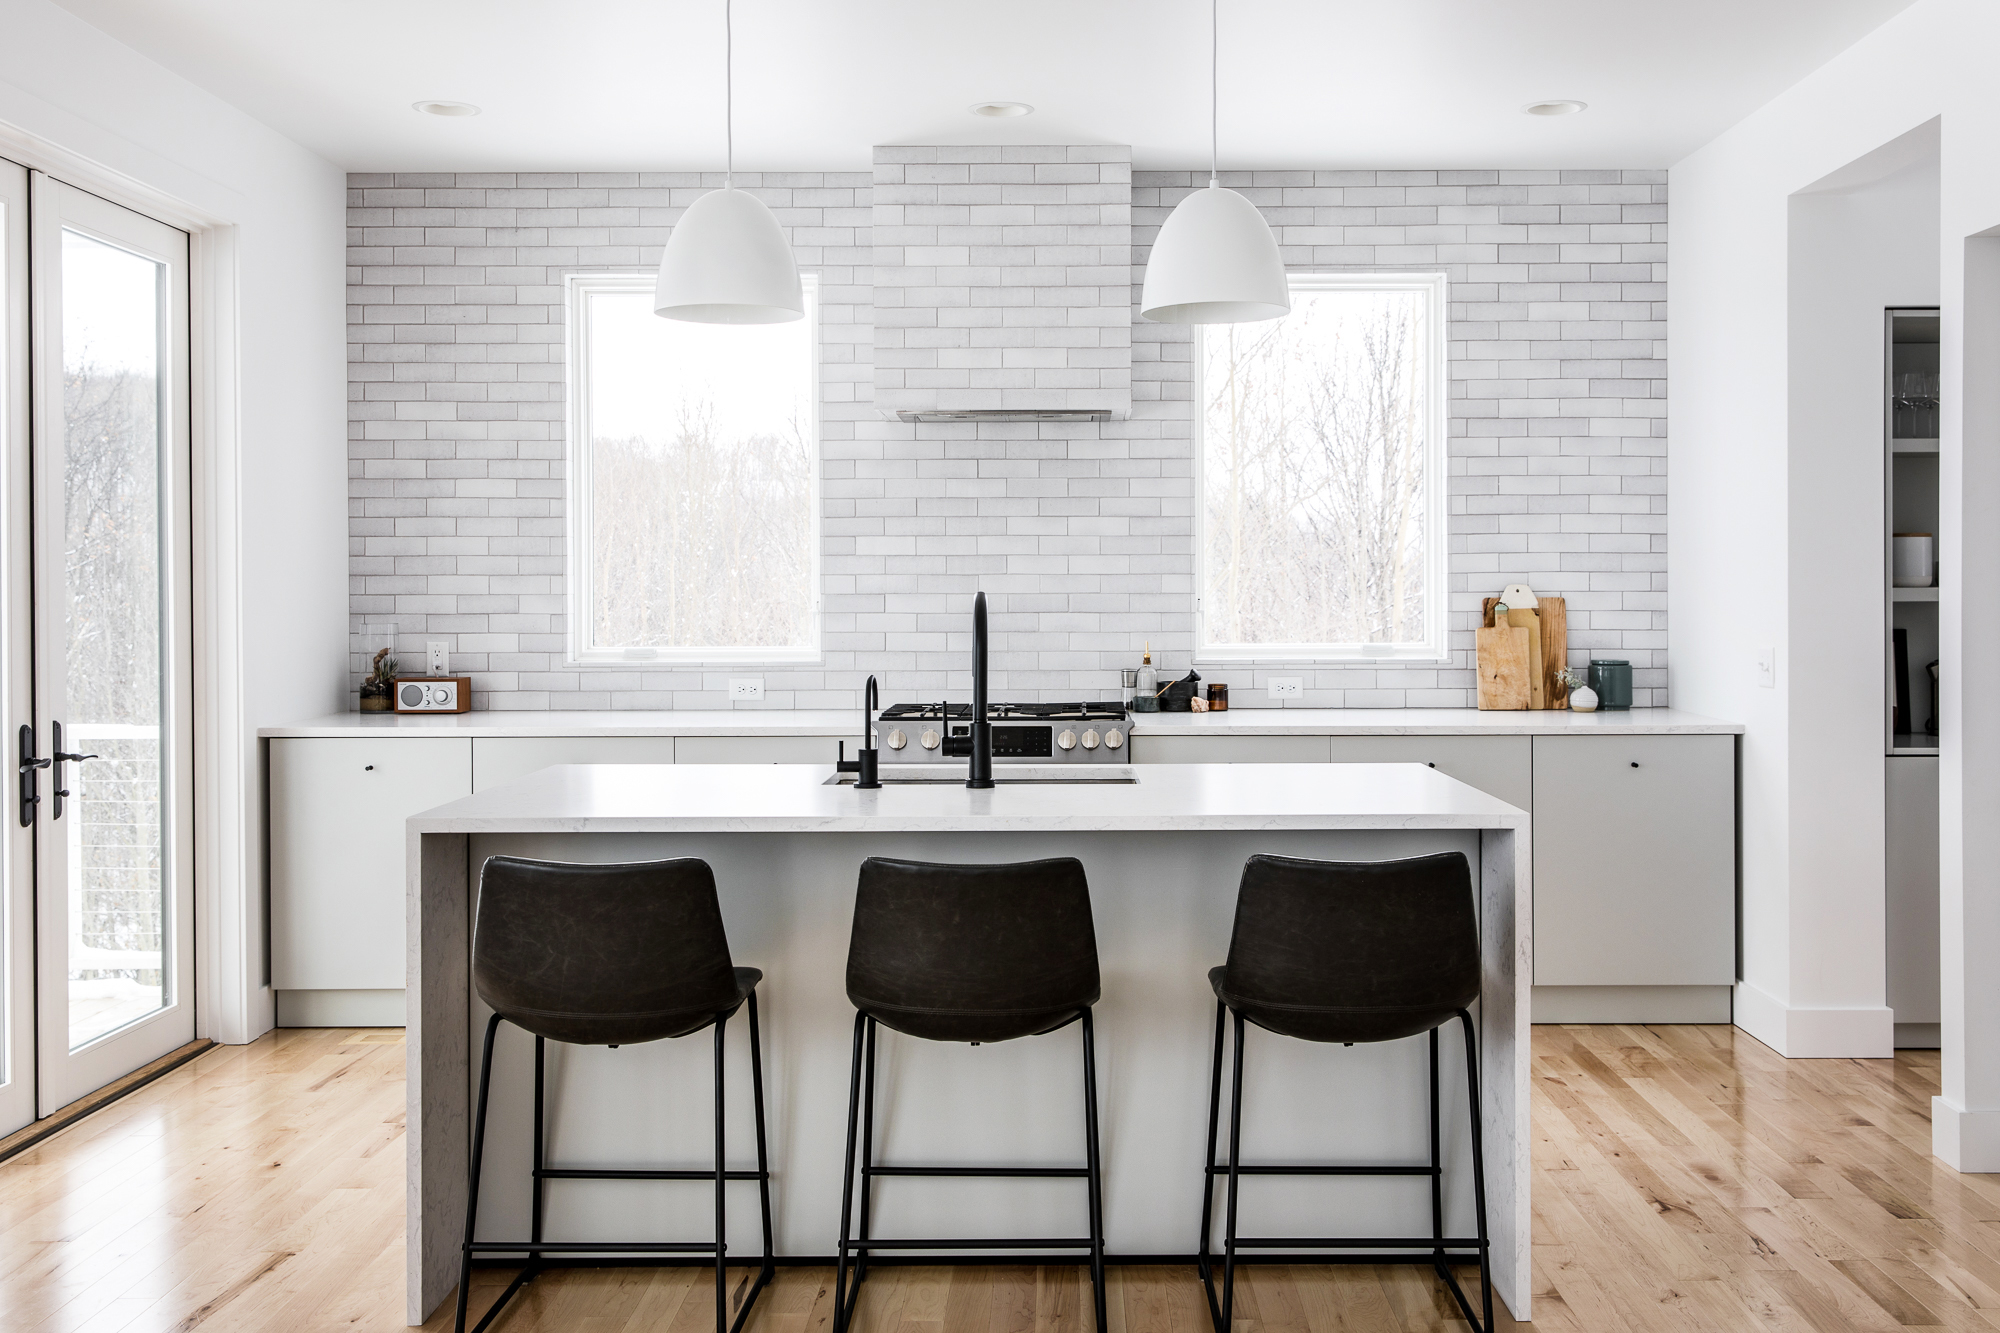 Megan Gilger's kitchen features our Glazed Thin Brick in White Mountains